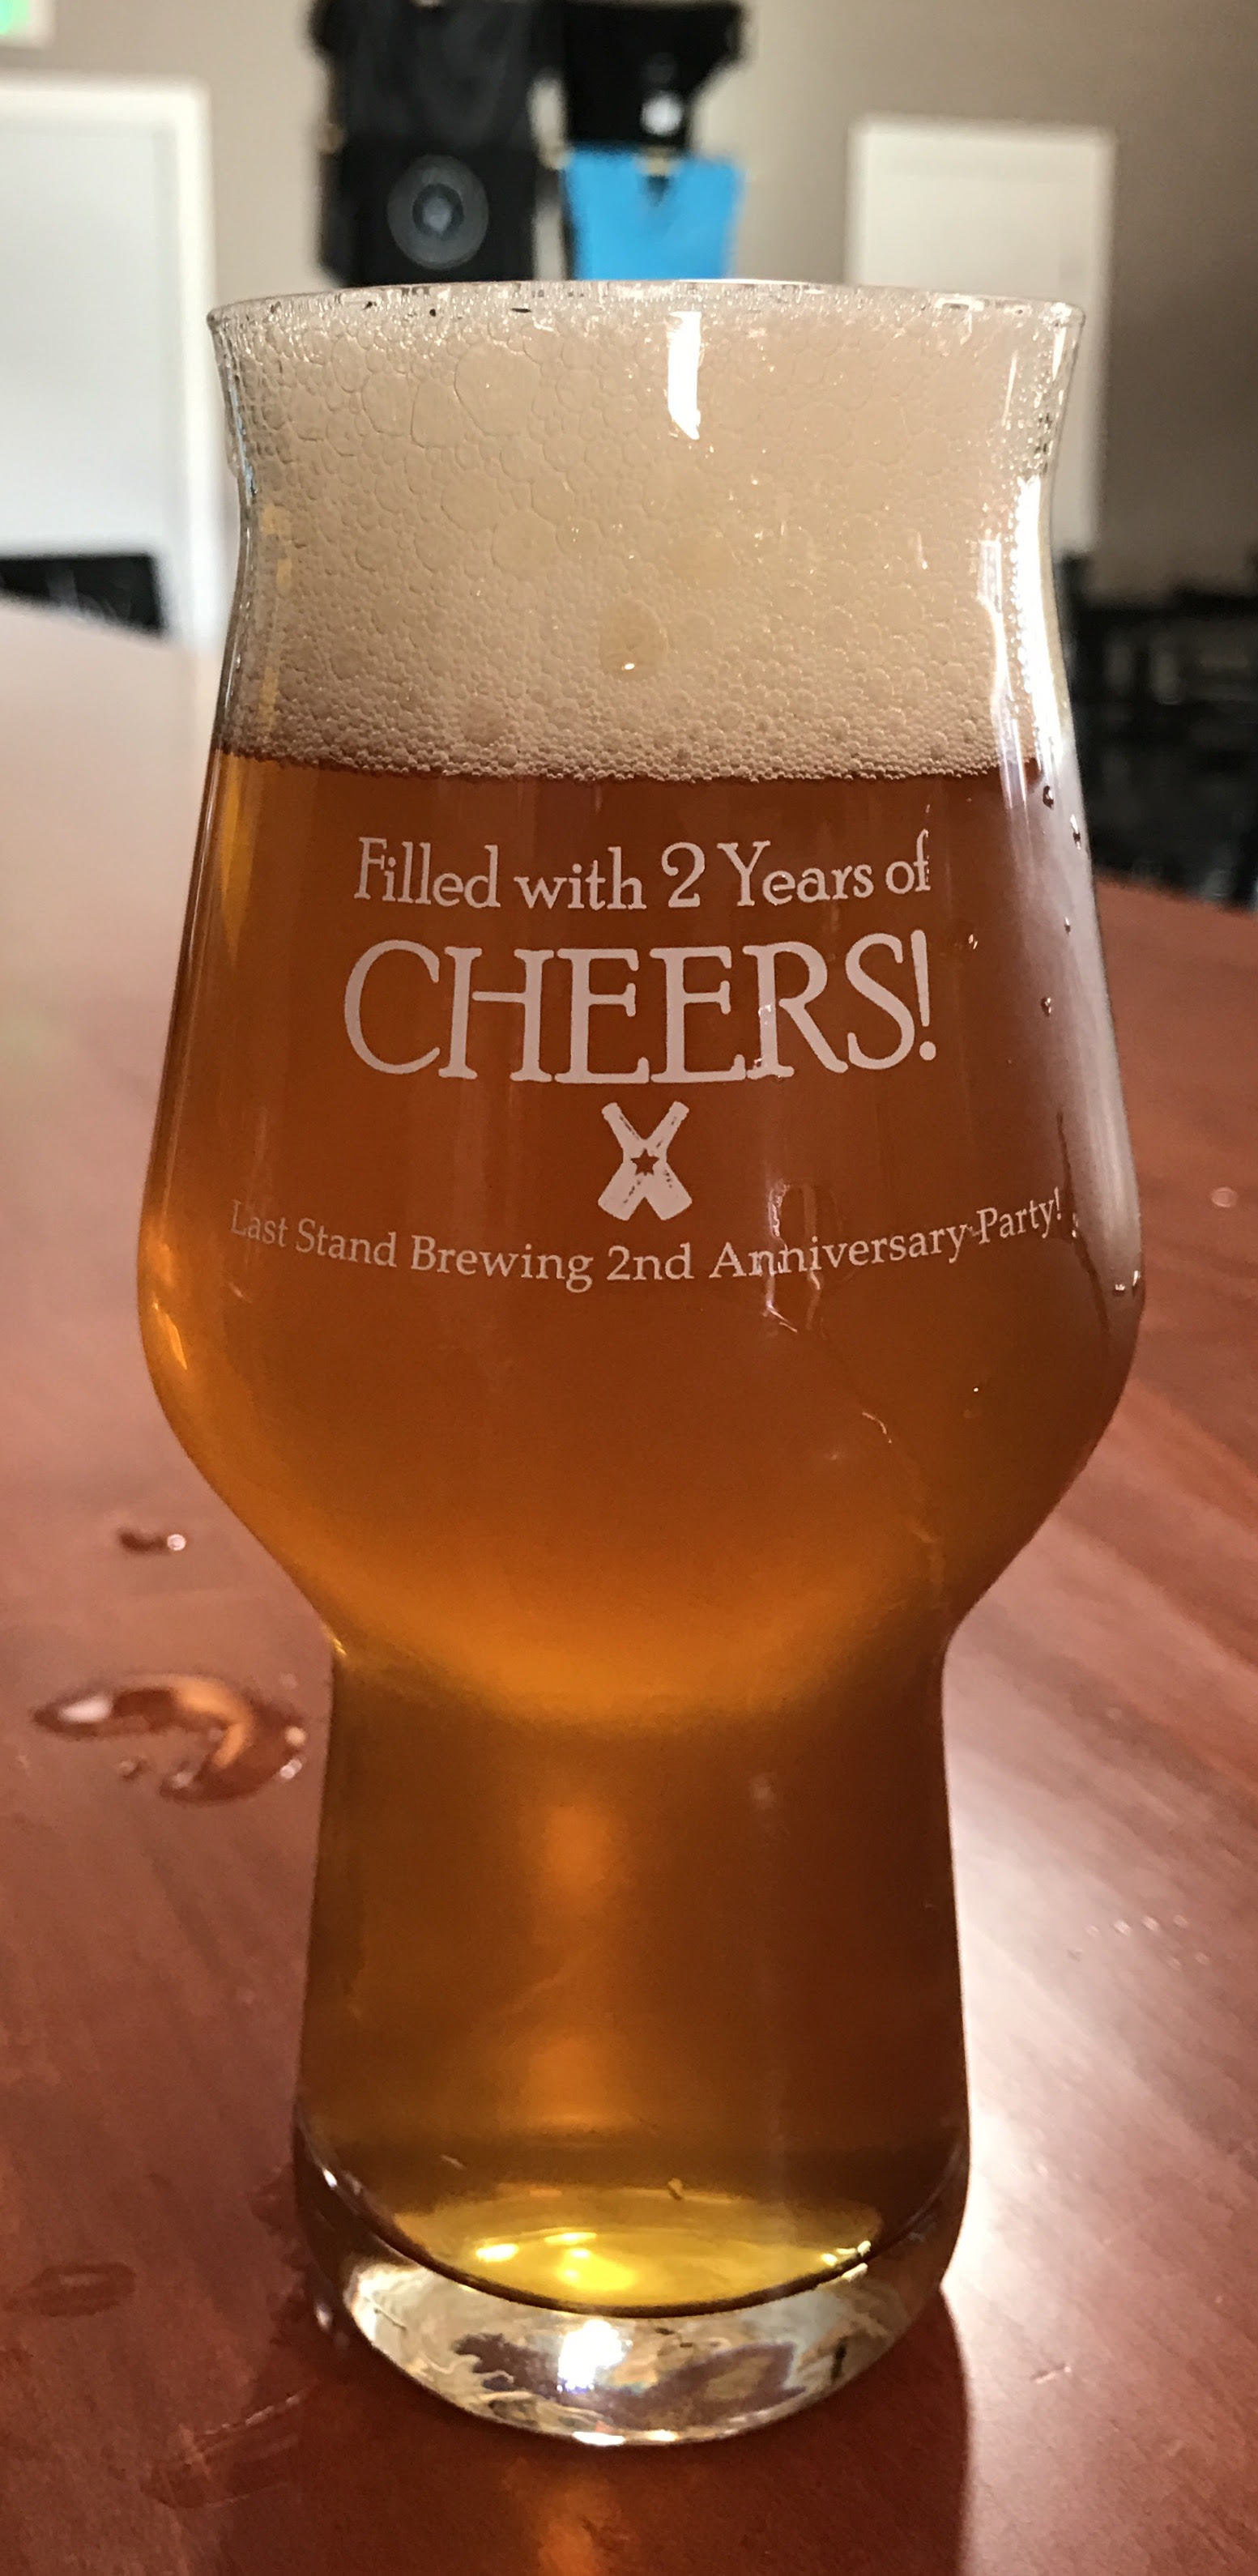 2nd Anniversary Last Stand Brewing